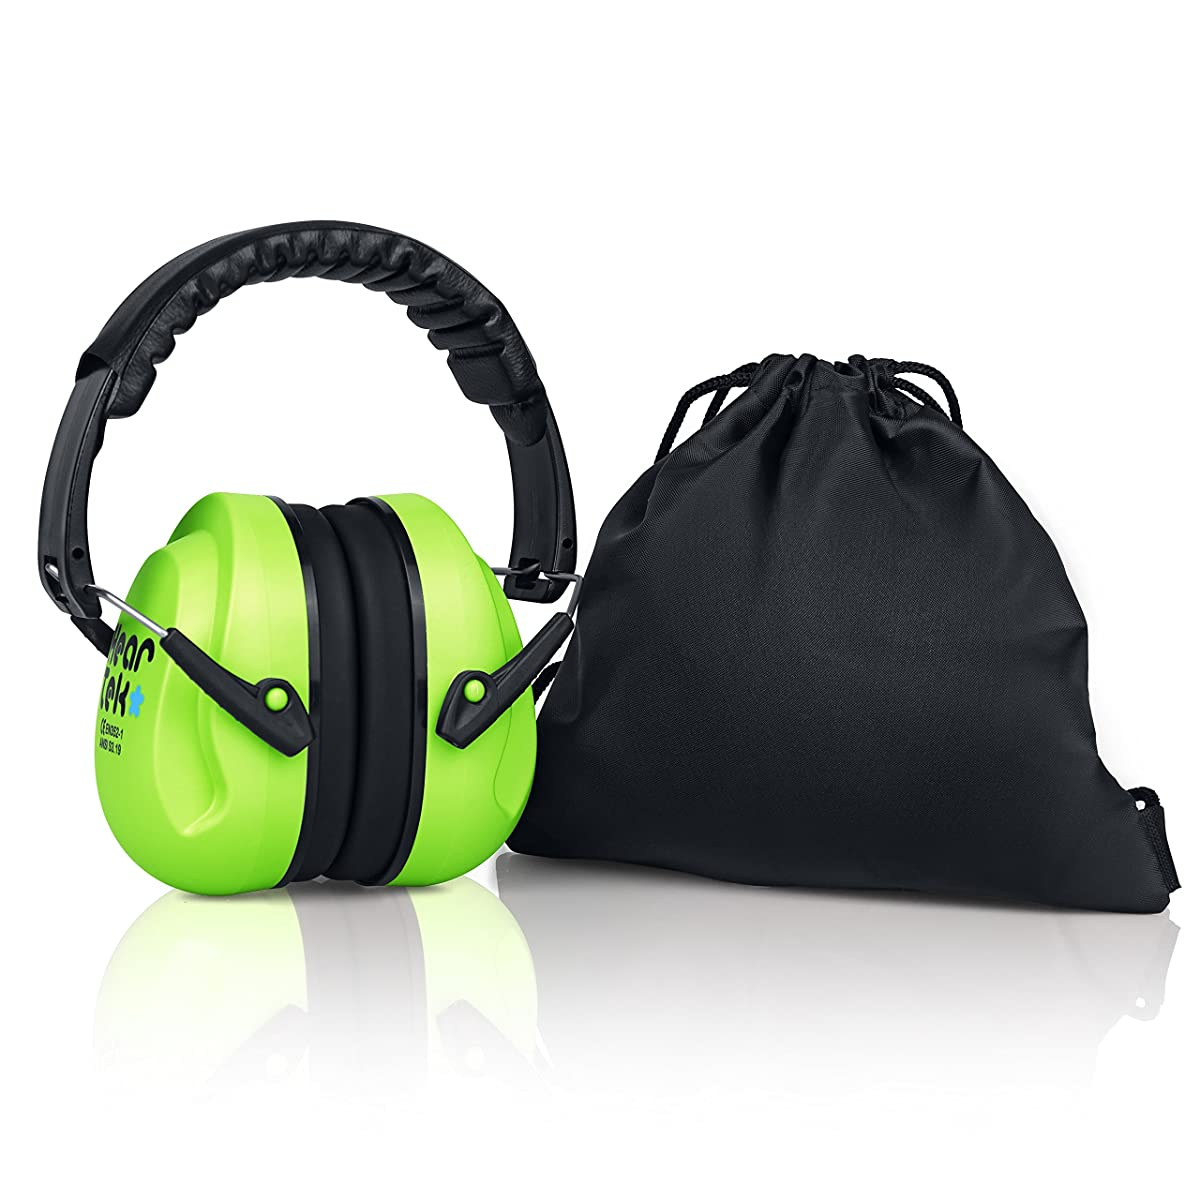 HearTek Kids Earmuffs Hearing Protection with Travel Bag- Junior Ear Defenders For Children, Padded Ear Protection, Small Adults, Women - Adjustable Protector Noise Reduction Ear Muffs